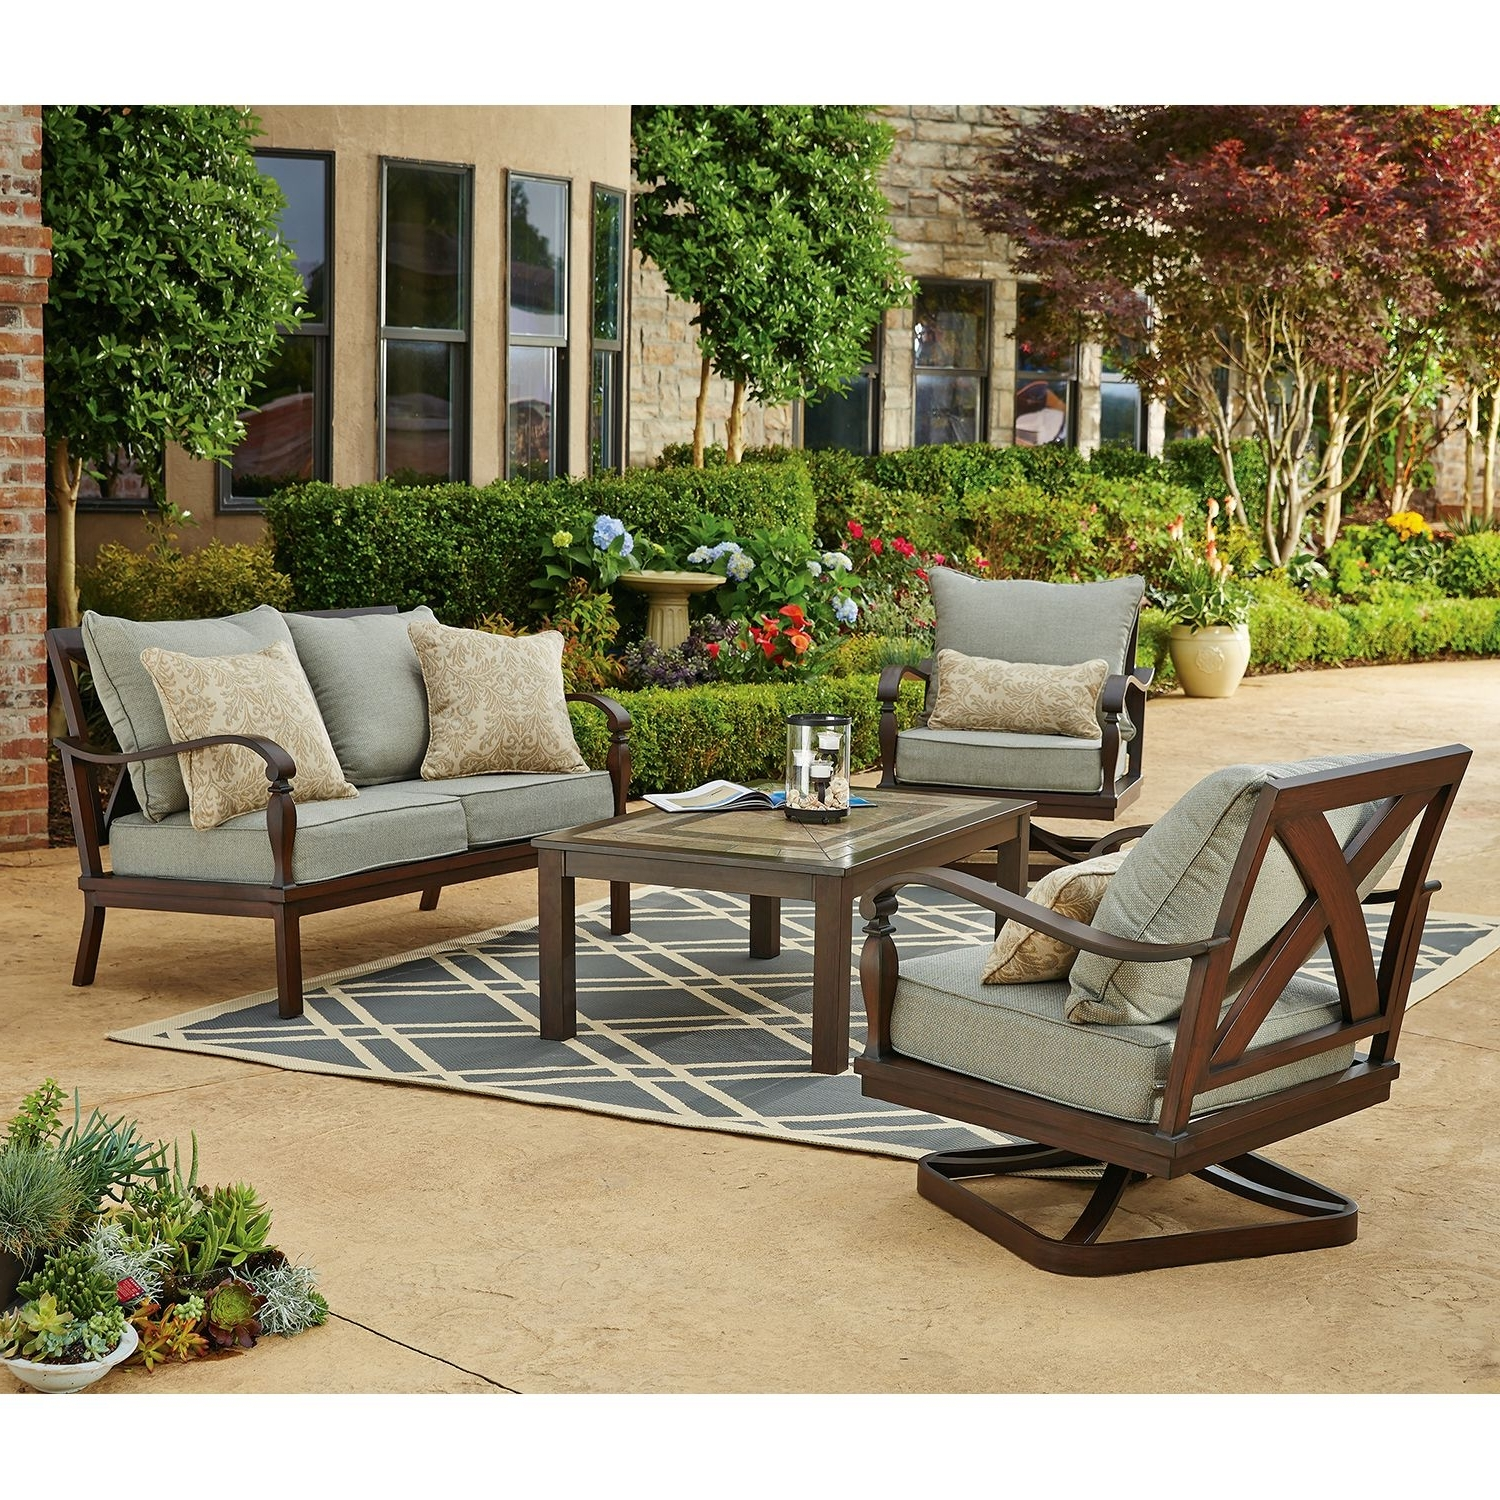 Fashionable Patio Conversation Sets Without Cushions With Furniture: Cozy Wrought Iron Patio Chairs With Cushions And Gray (View 5 of 20)